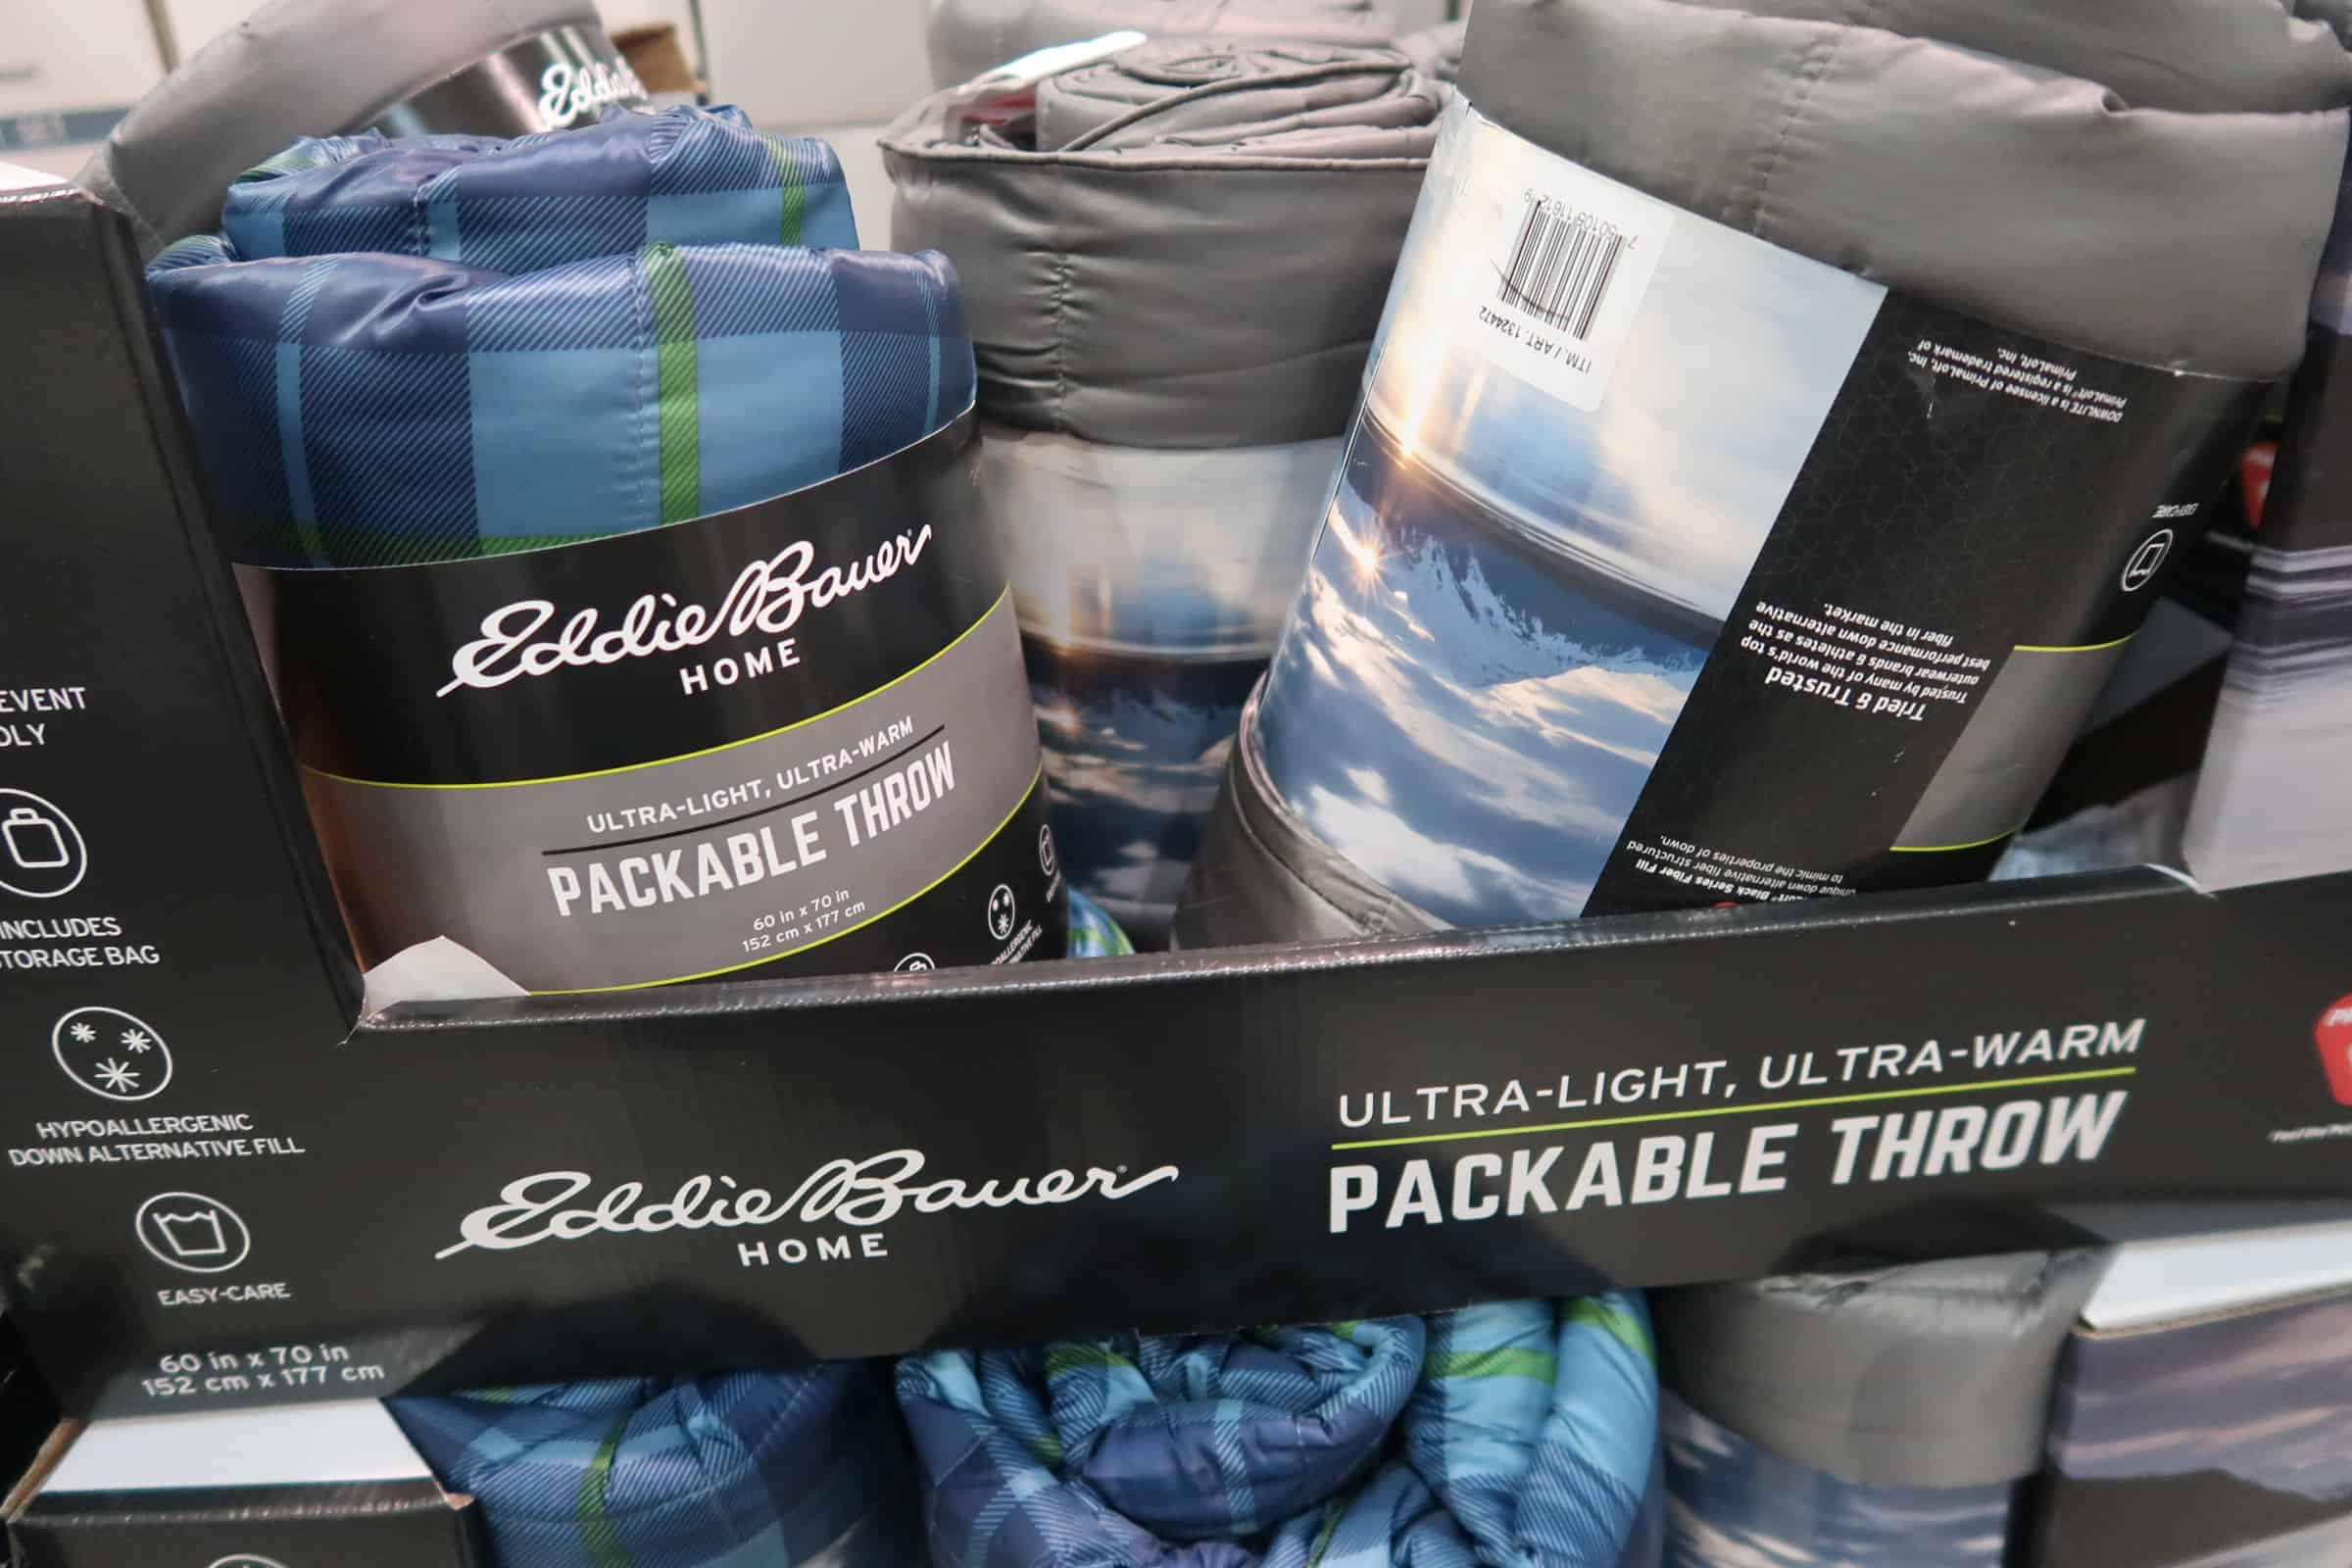 Clearance Eddie Bauer Packable Throw at Costco